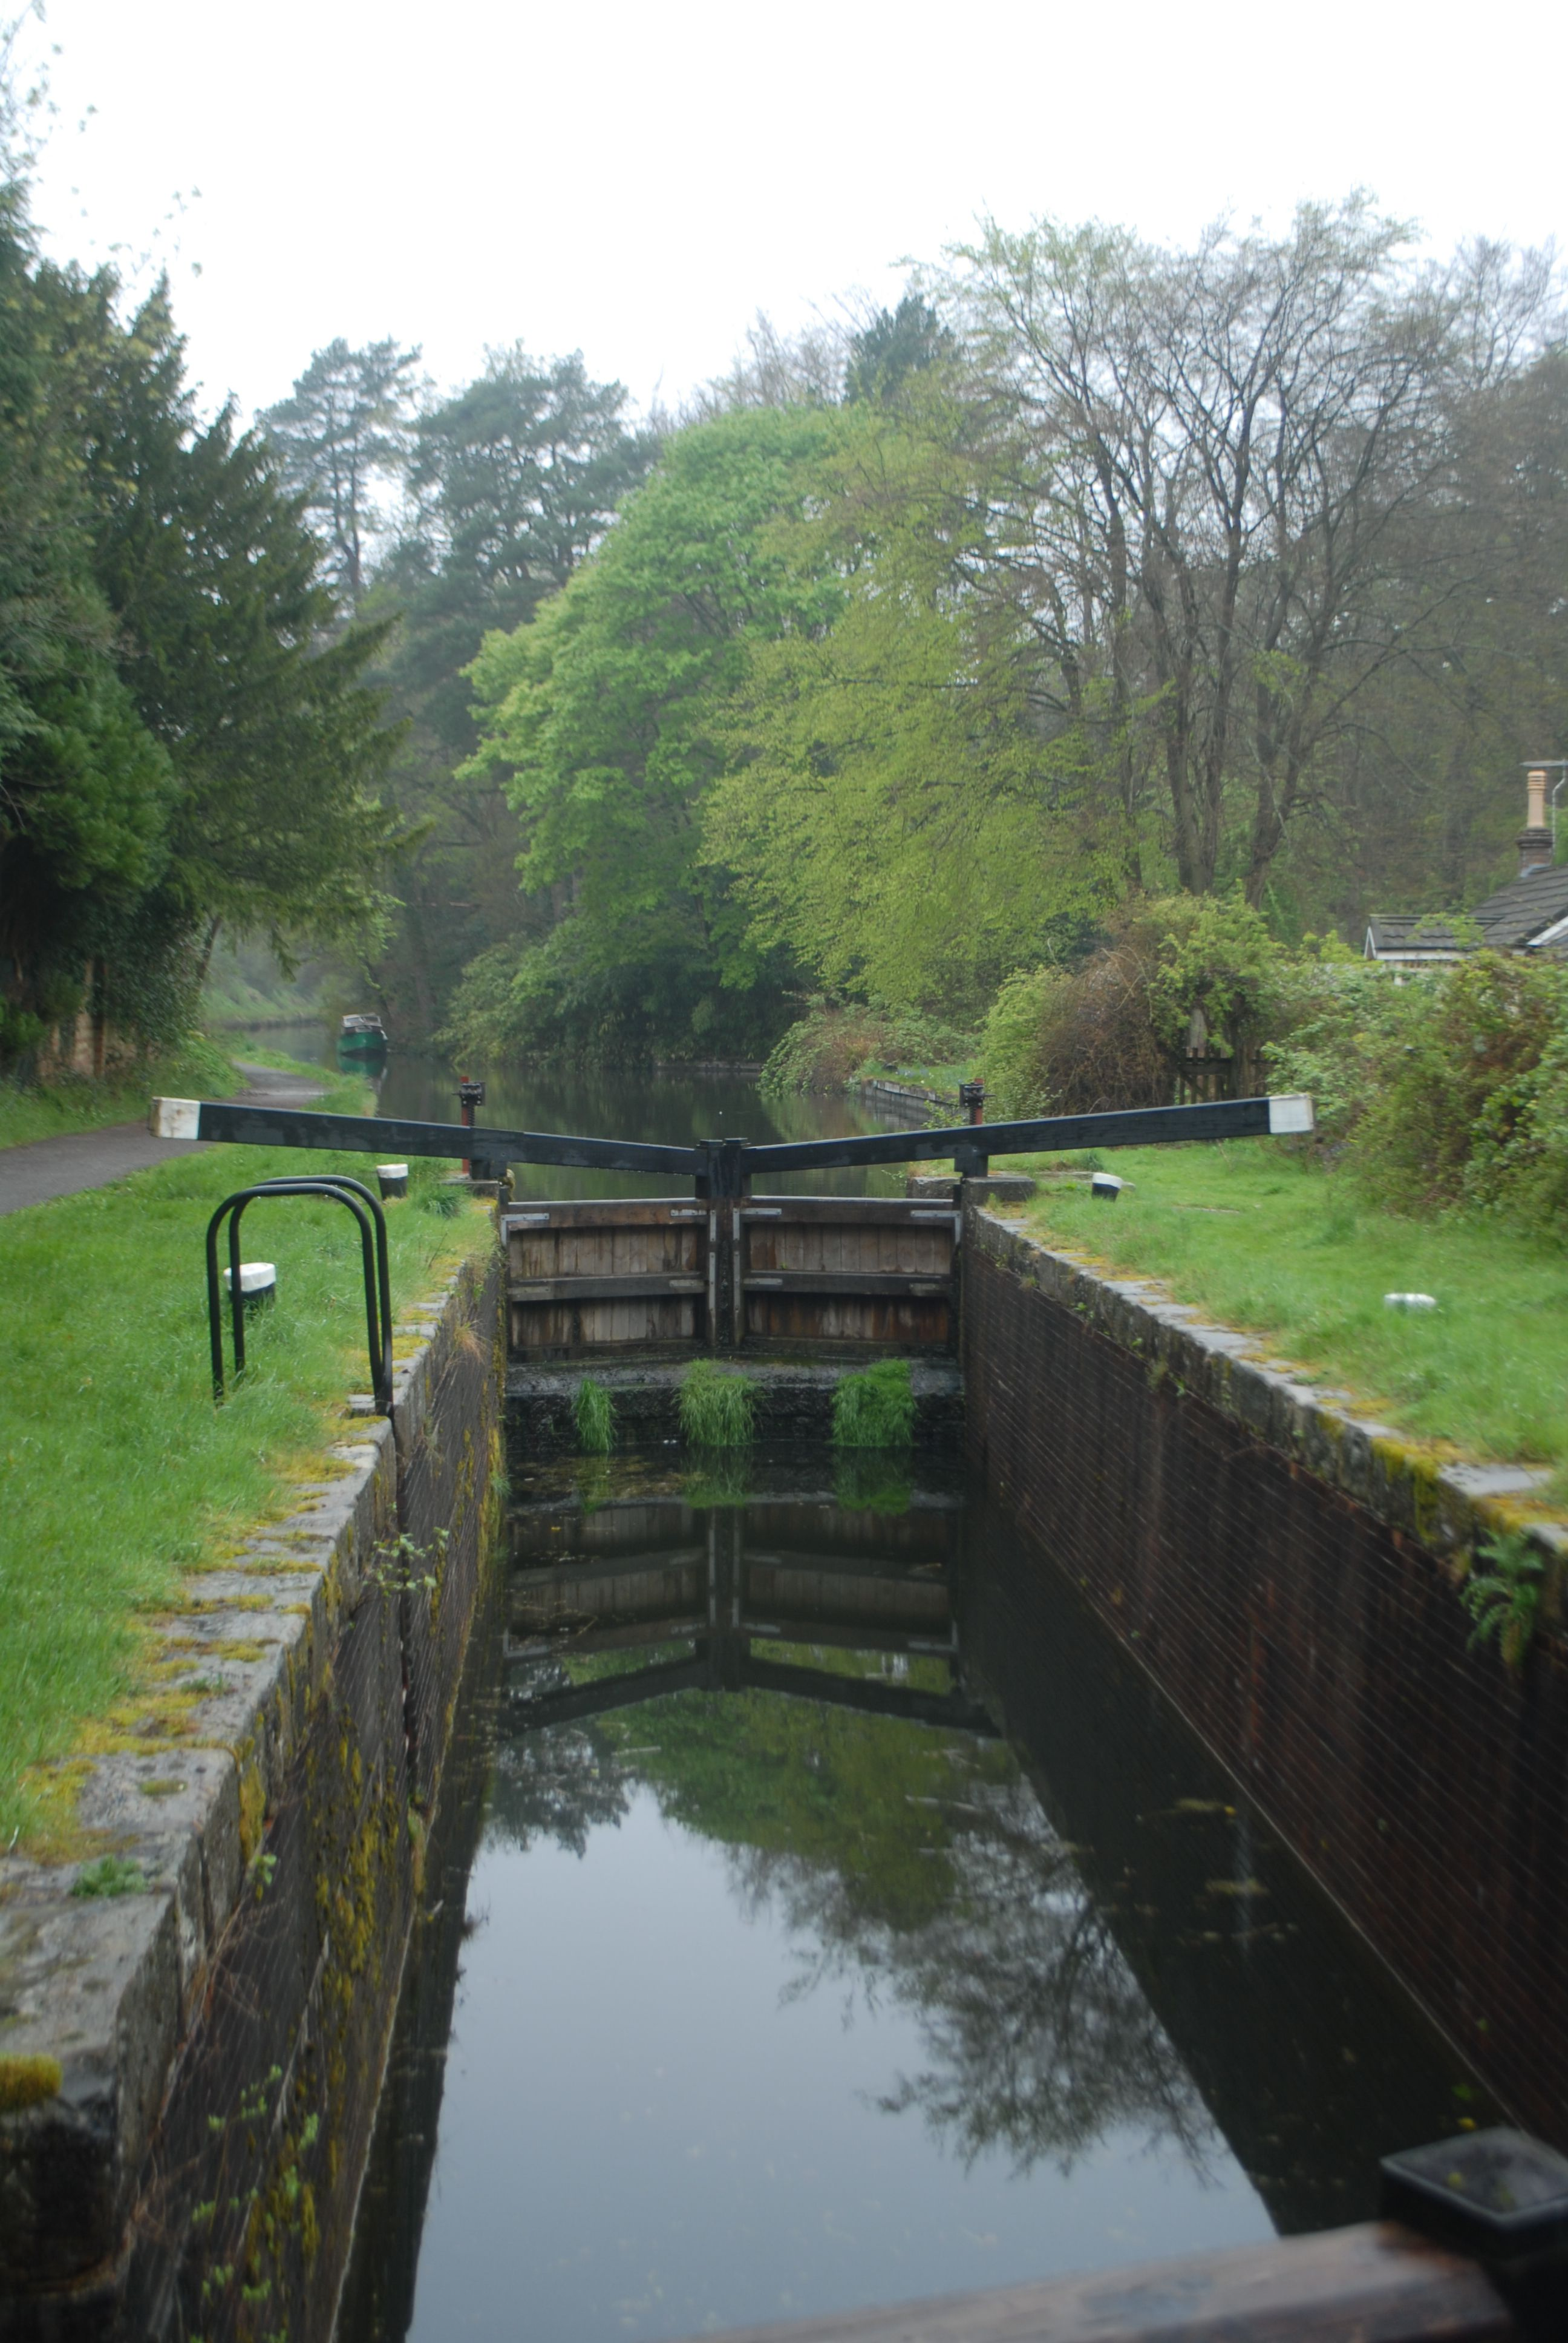 The development of canals in the industrial revolution publicscrutiny Choice Image